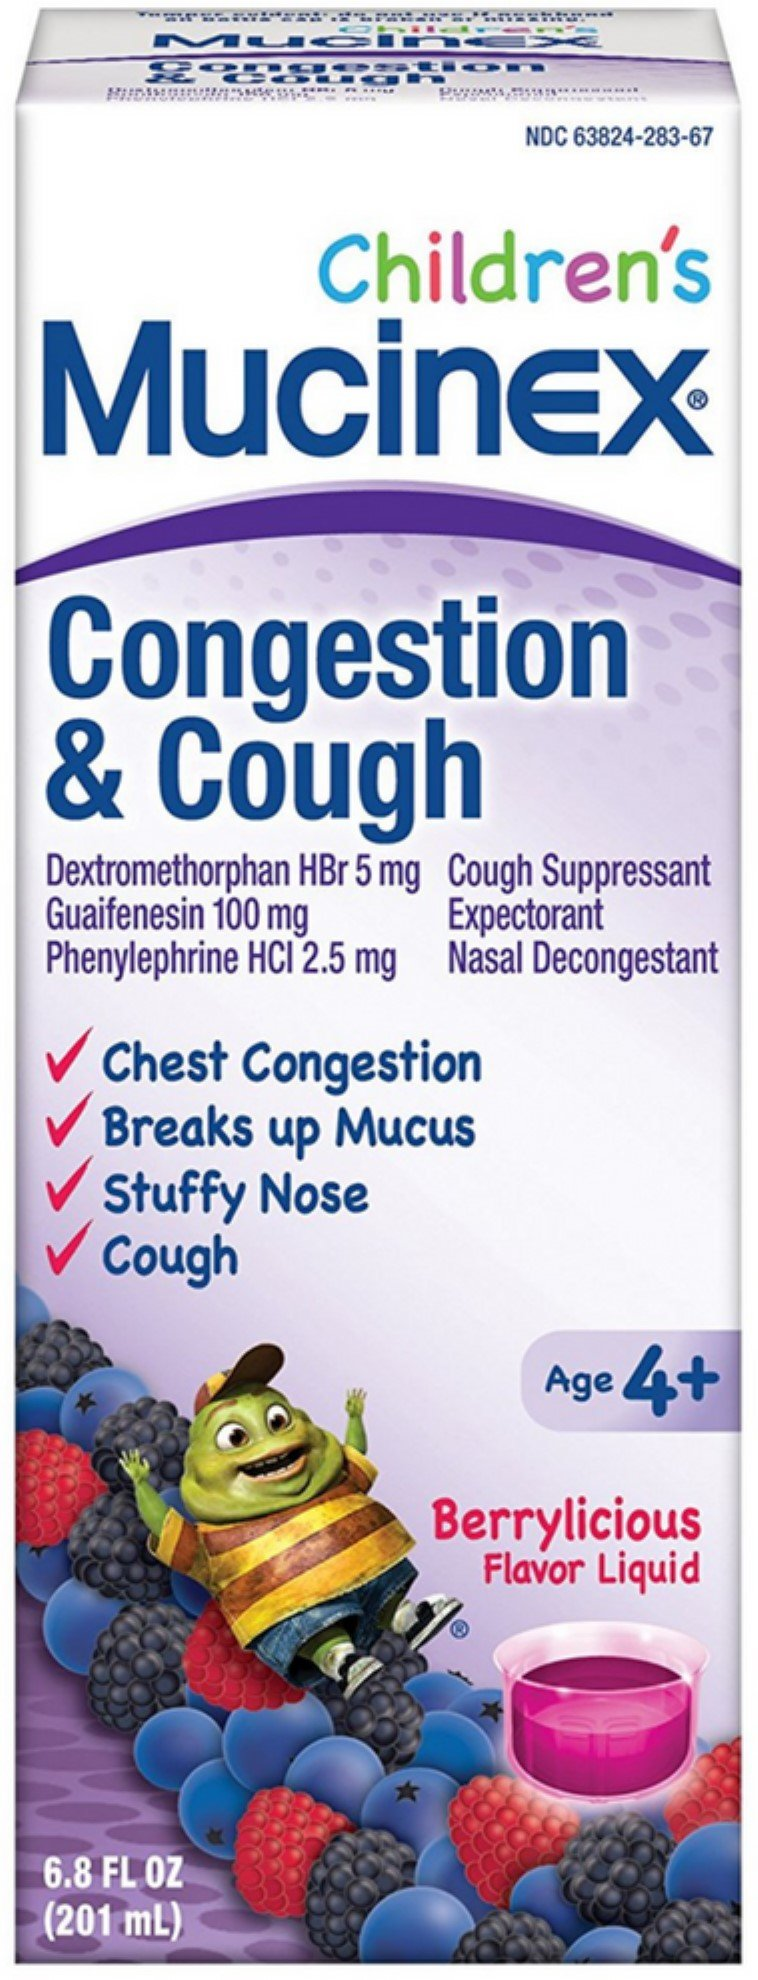 Mucinex Children's Congestion and Cough Liquid, Berrylicious Flavor, 6.8 oz (Pack of 12) by Mucinex